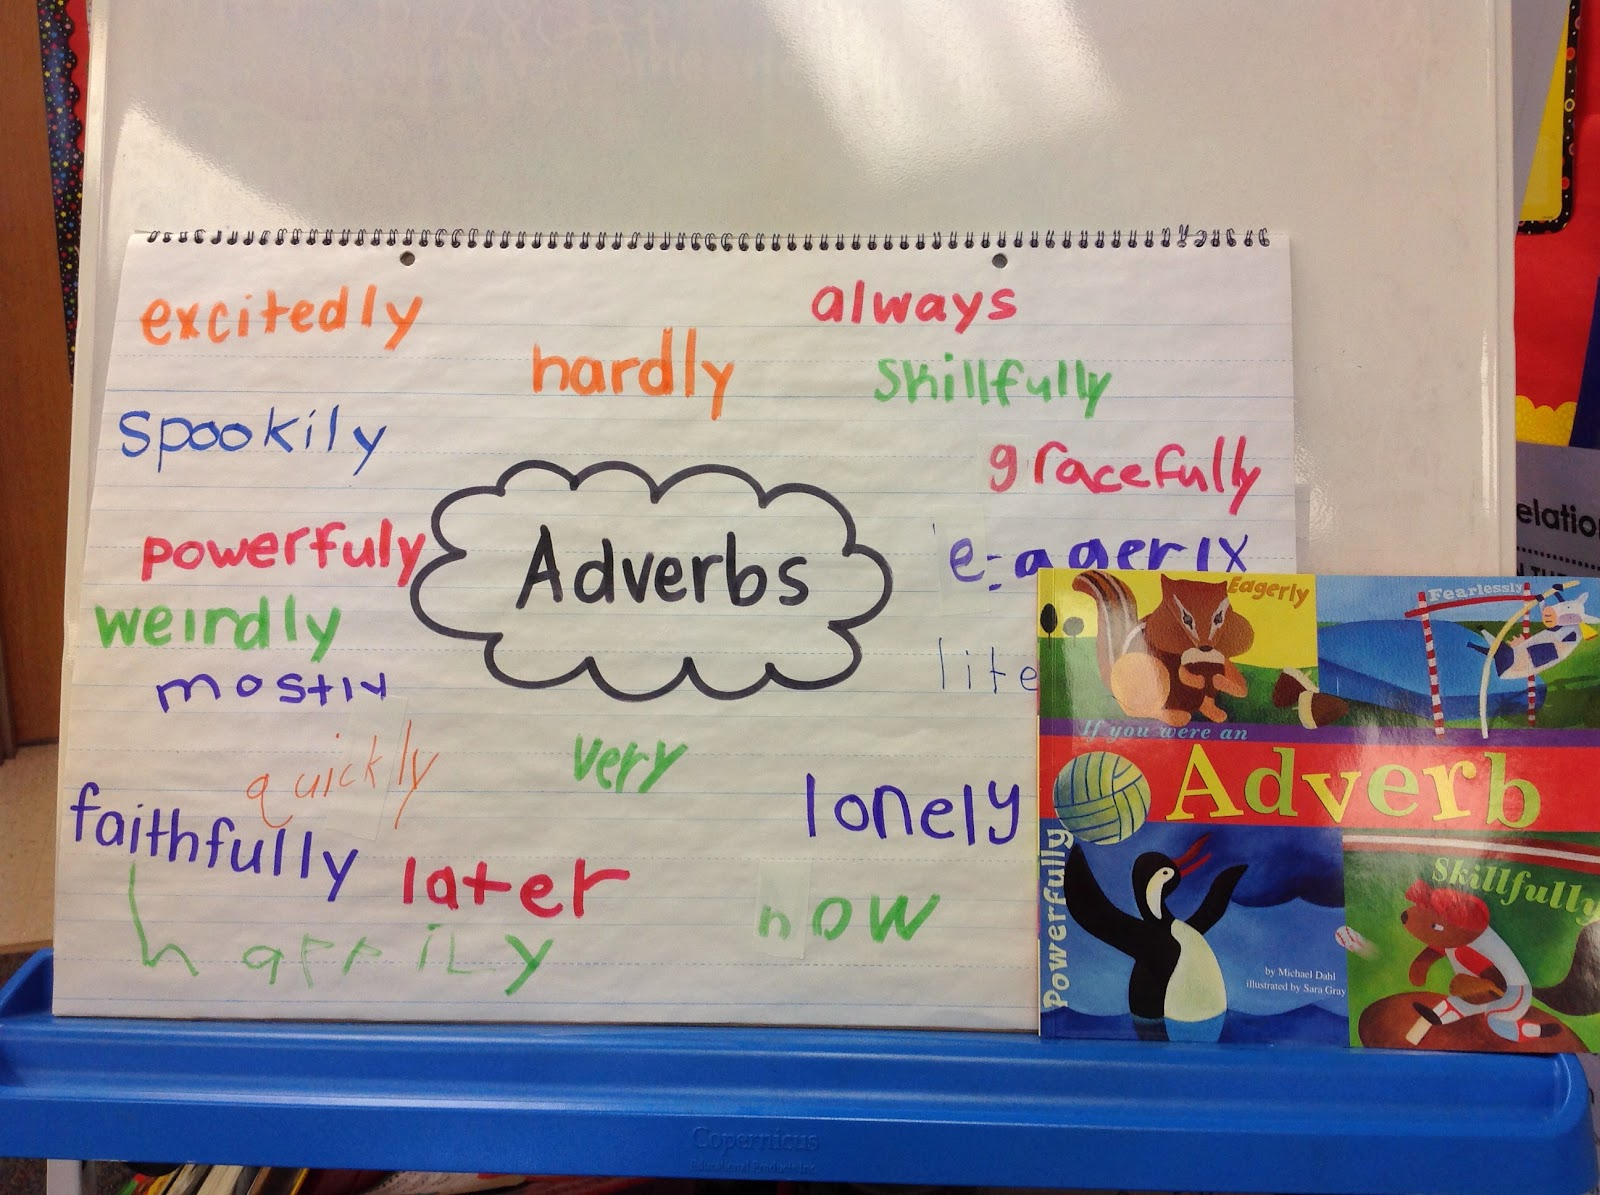 Worksheet Adverb Games For Kids the open door classroom acting out adverbs when chart was finished we tried one of activities in back book it such a blast game is basically played like charades